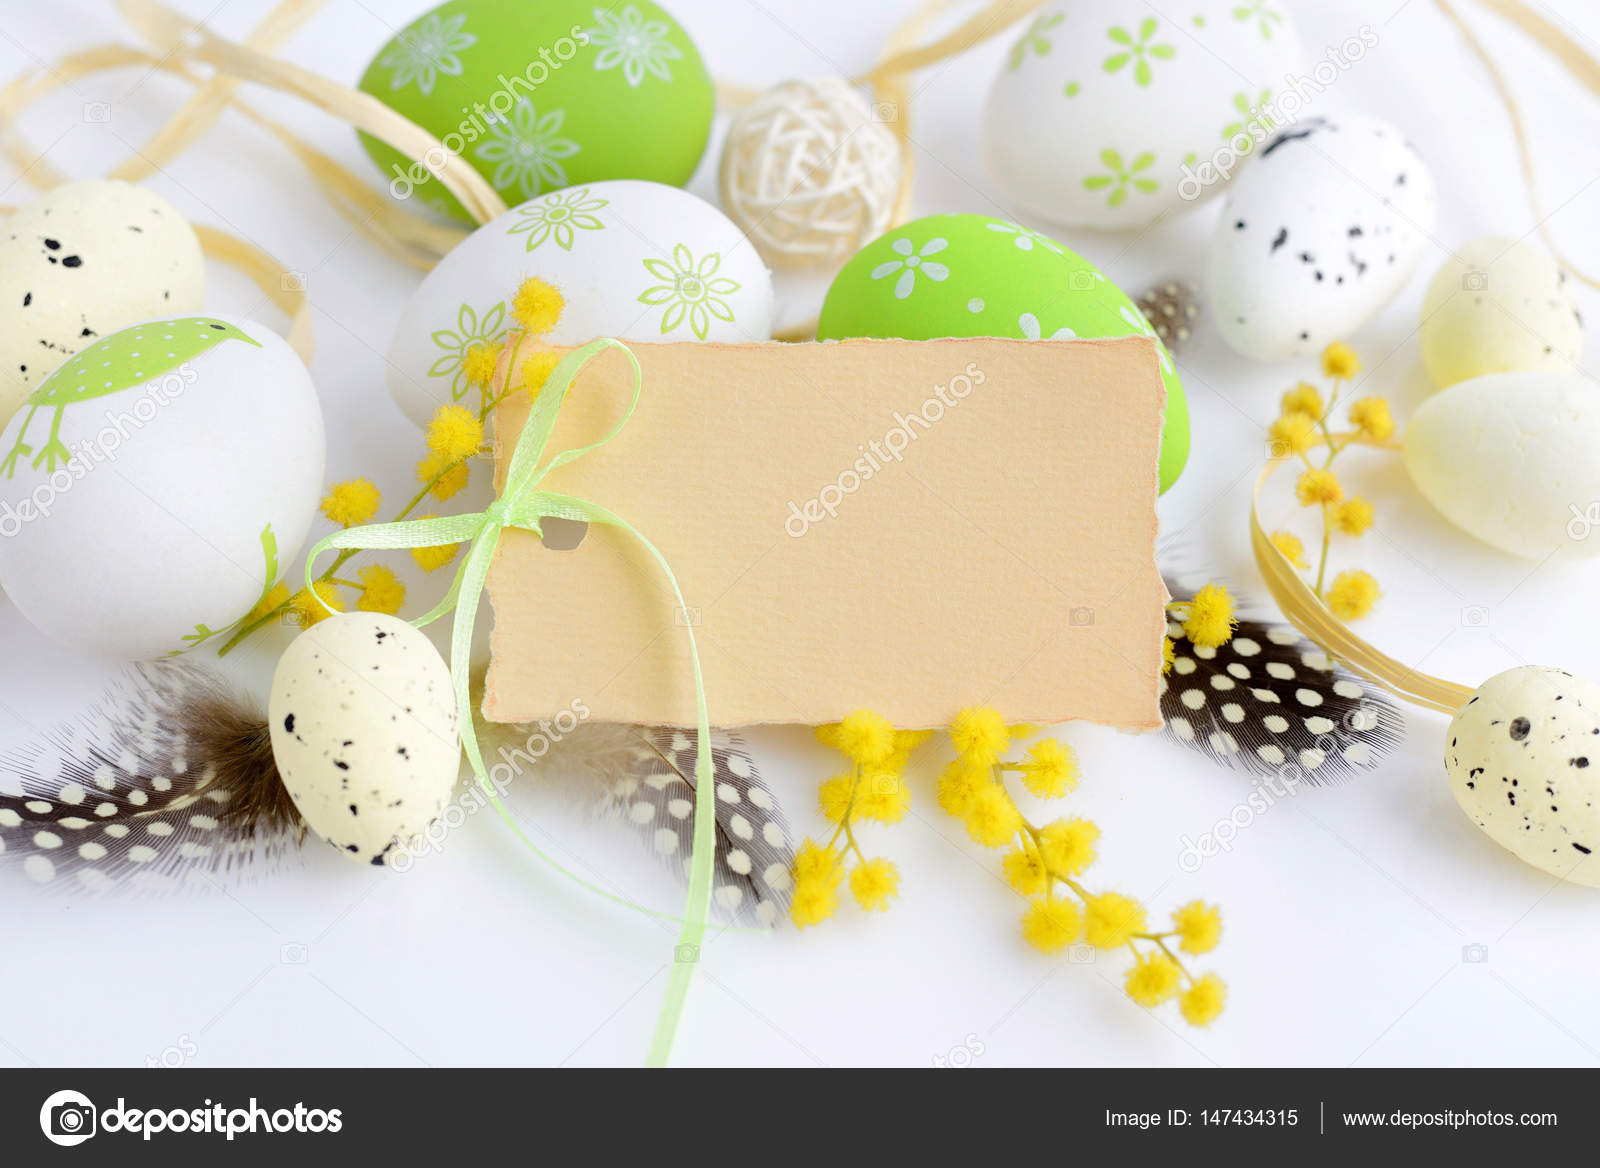 Easter eggs and mimosa flowers on white background with blank card easter eggs and mimosa flowers on white background with blank card to greet stock photo m4hsunfo